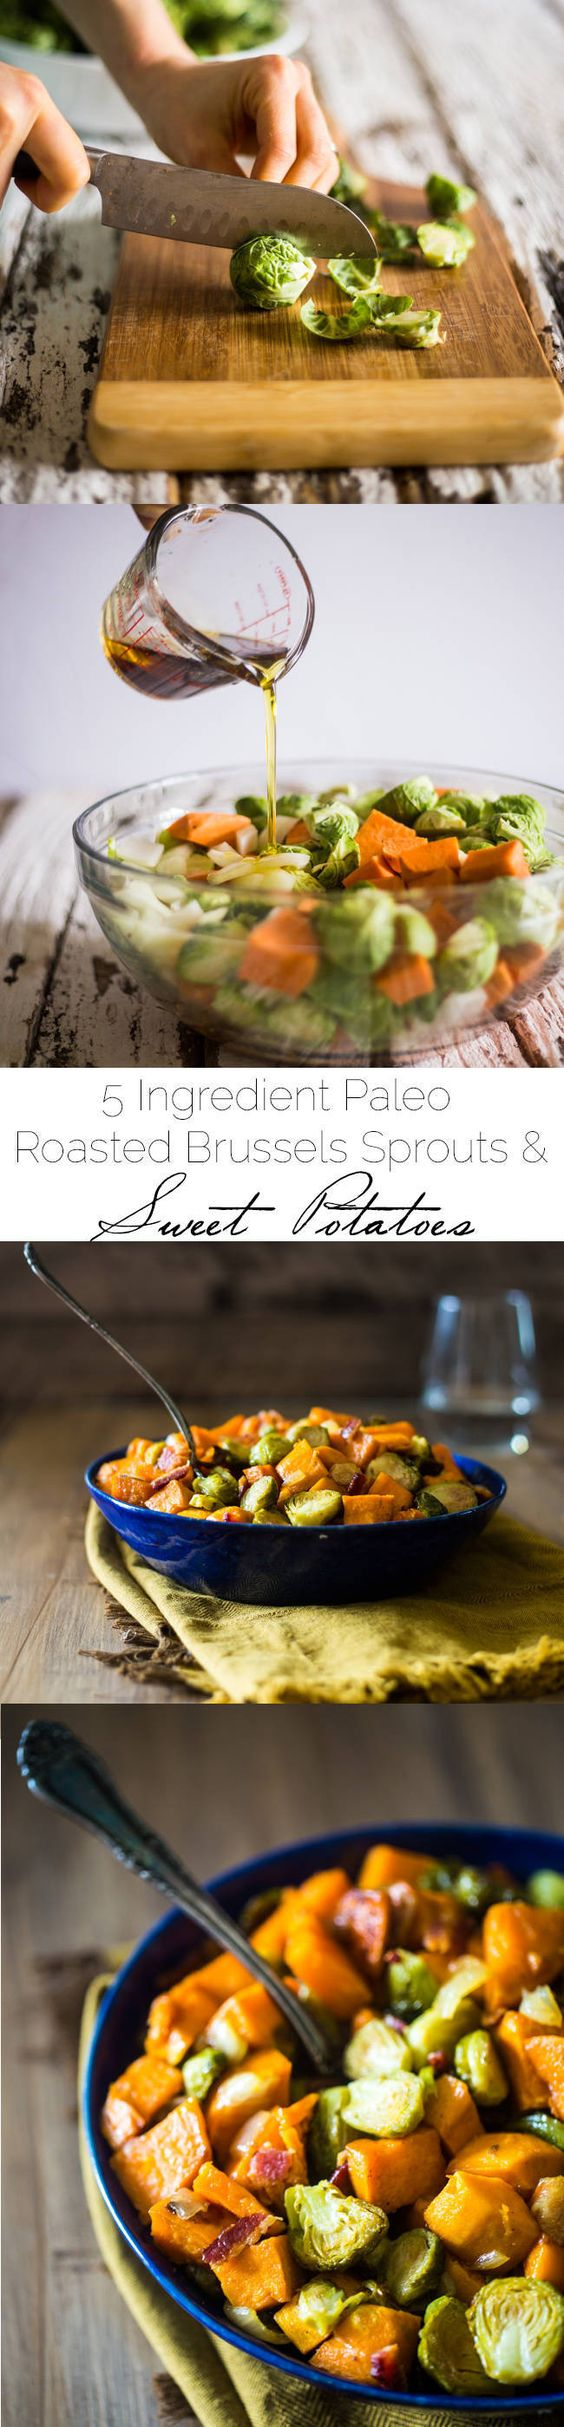 Roasted Brussels Sprouts, Sweet Potatoes and Bacon   Recipe   Brussels ...